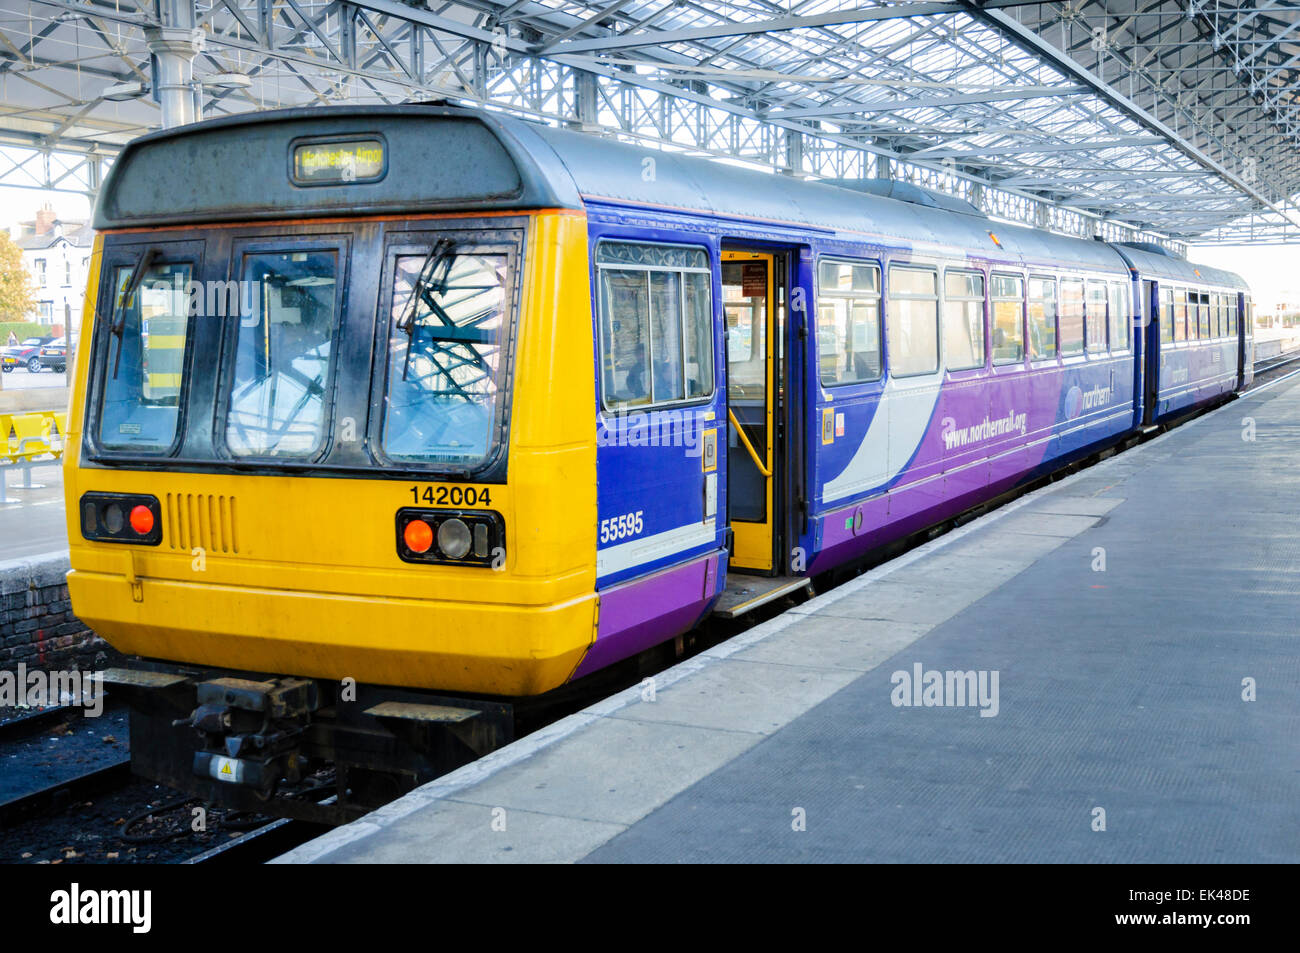 Railbus style 'Pacer' diesel multiple unit train operated by Northern Rail, waiting at a railway station - Stock Image